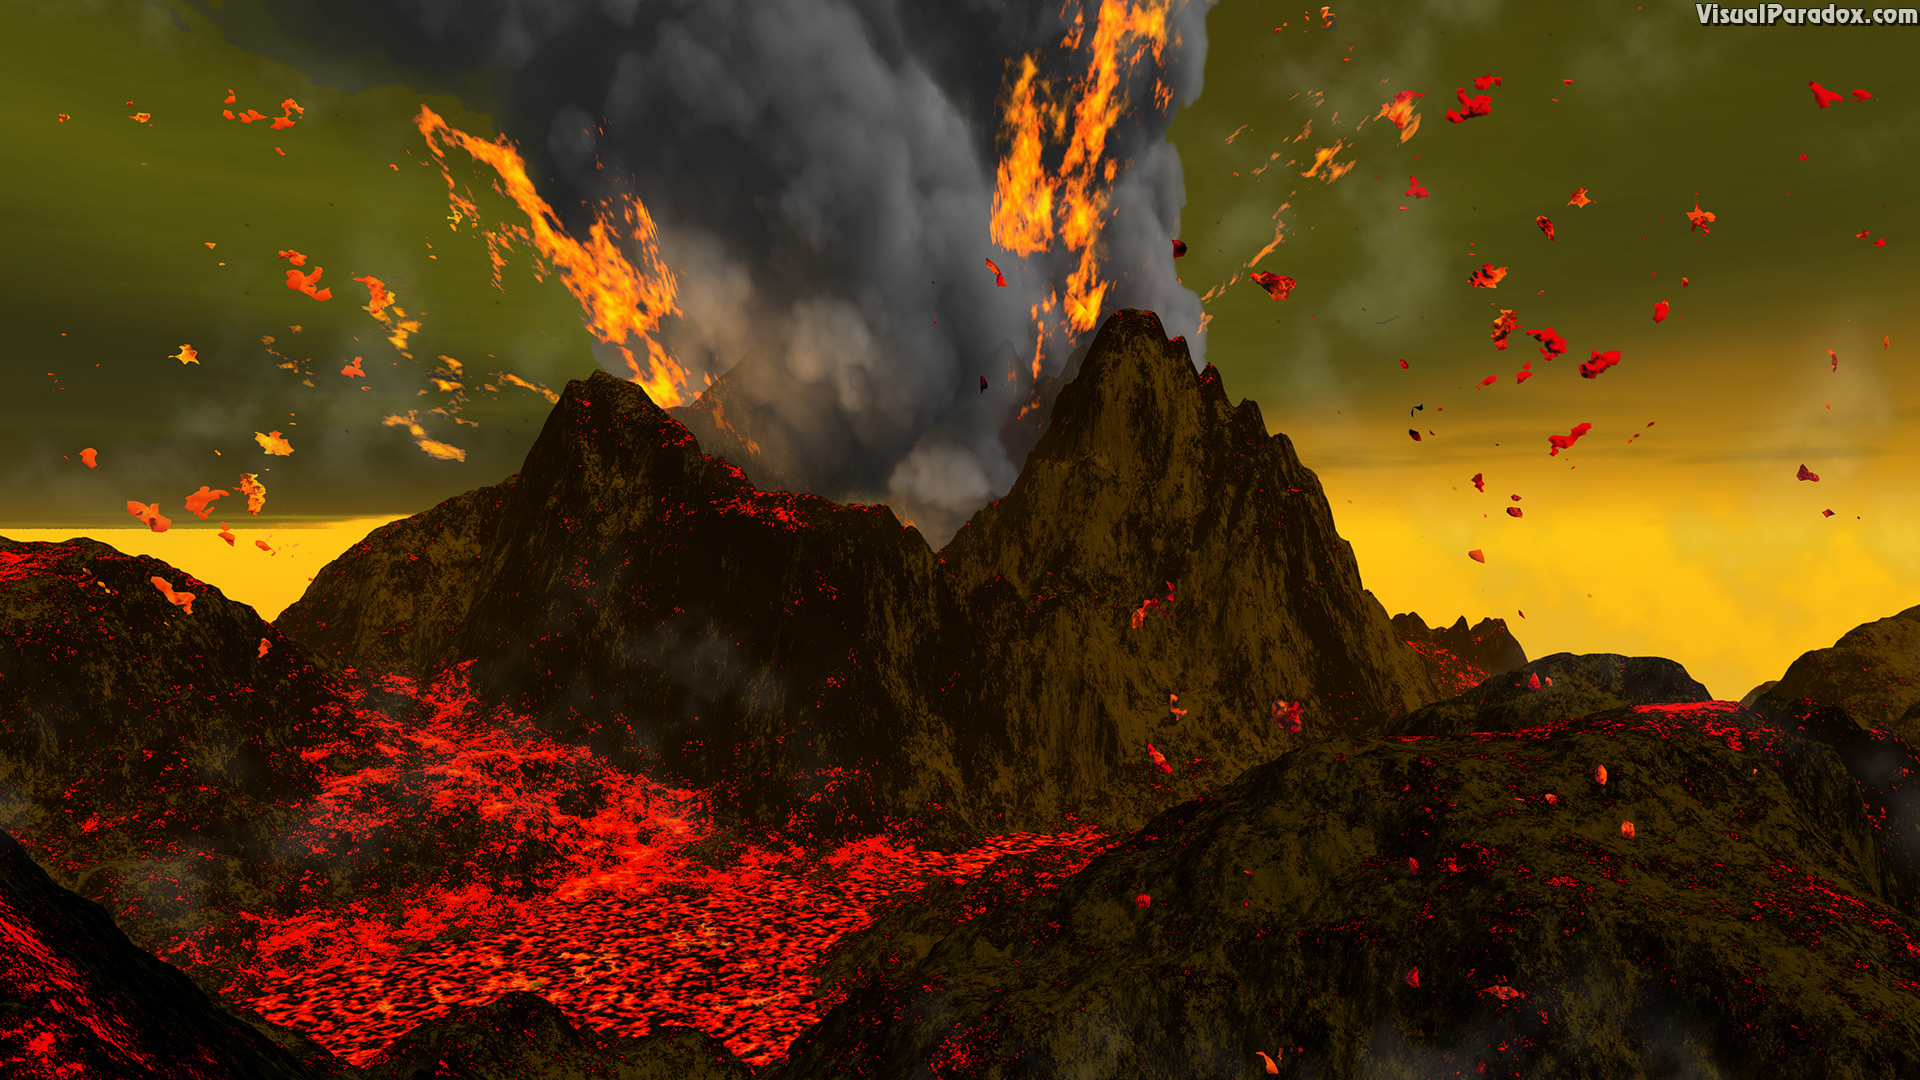 eruption, explosion, hell, lava, red, volcanic, volcano, mountain, magma, ash, smoke, fire, active, volcanoes, erupt, volcanology, 3d, wallpaper